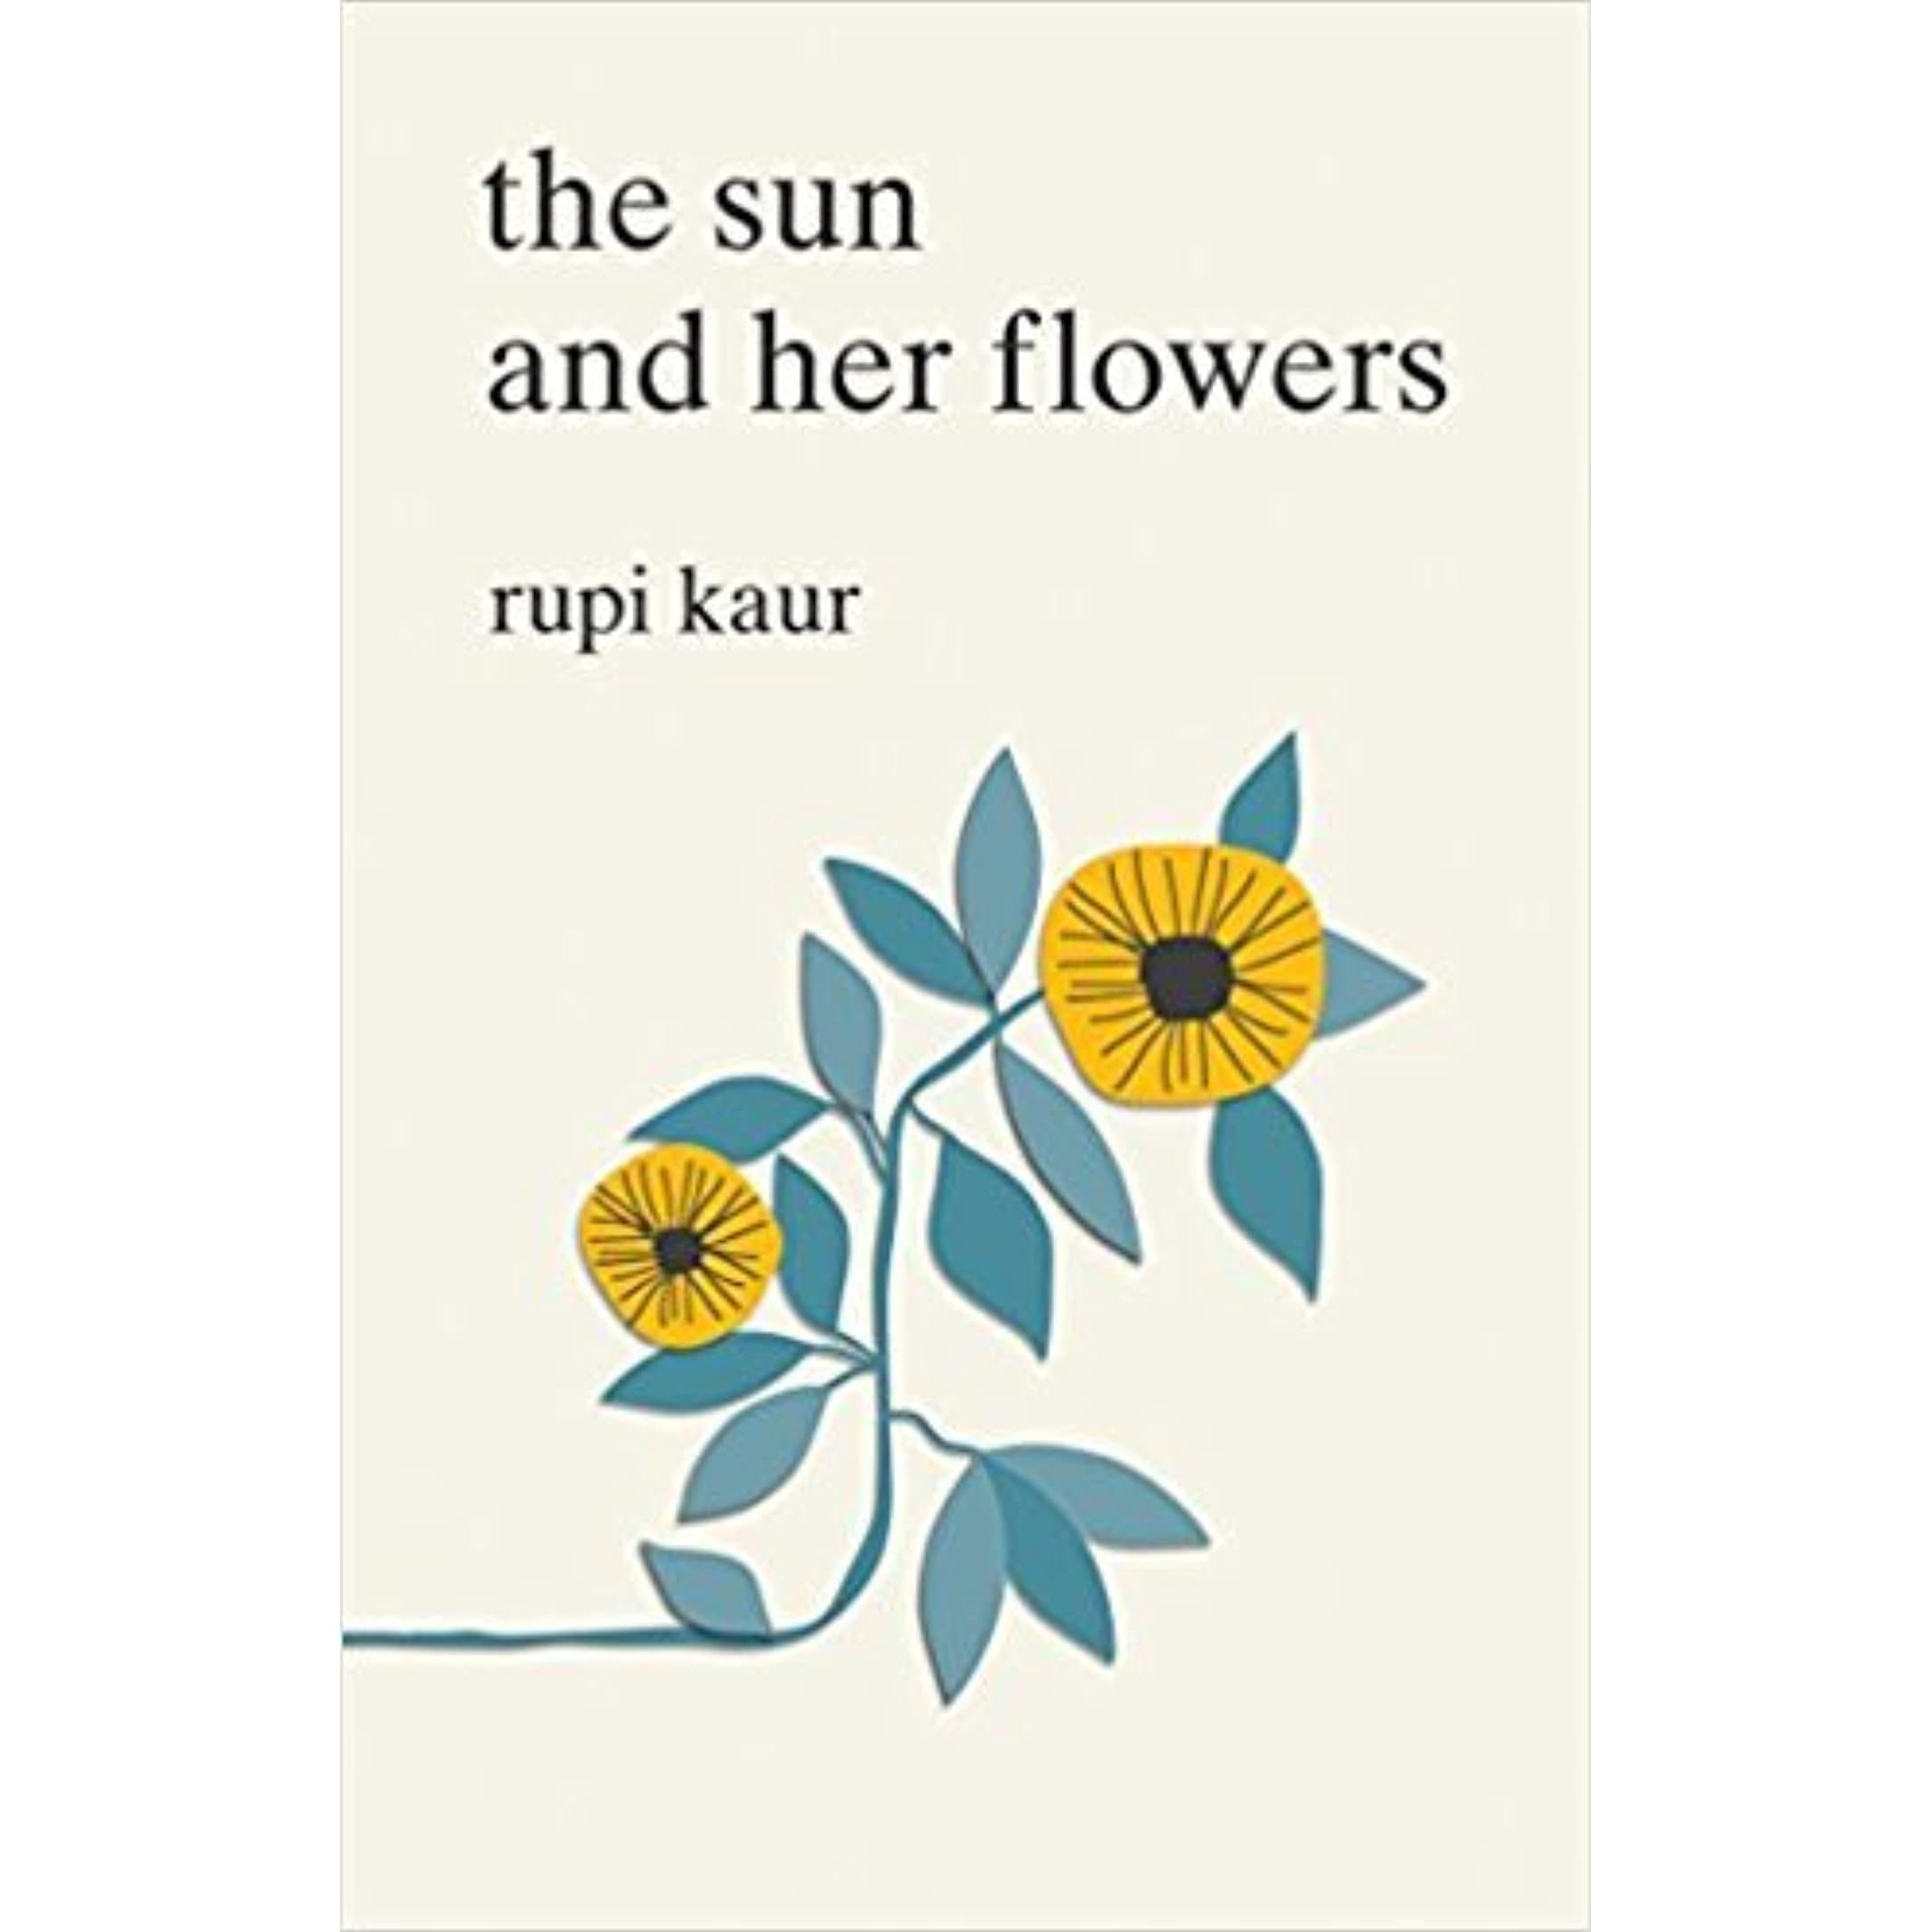 The sun and her flowers by rupi kaur izmirmasajfo